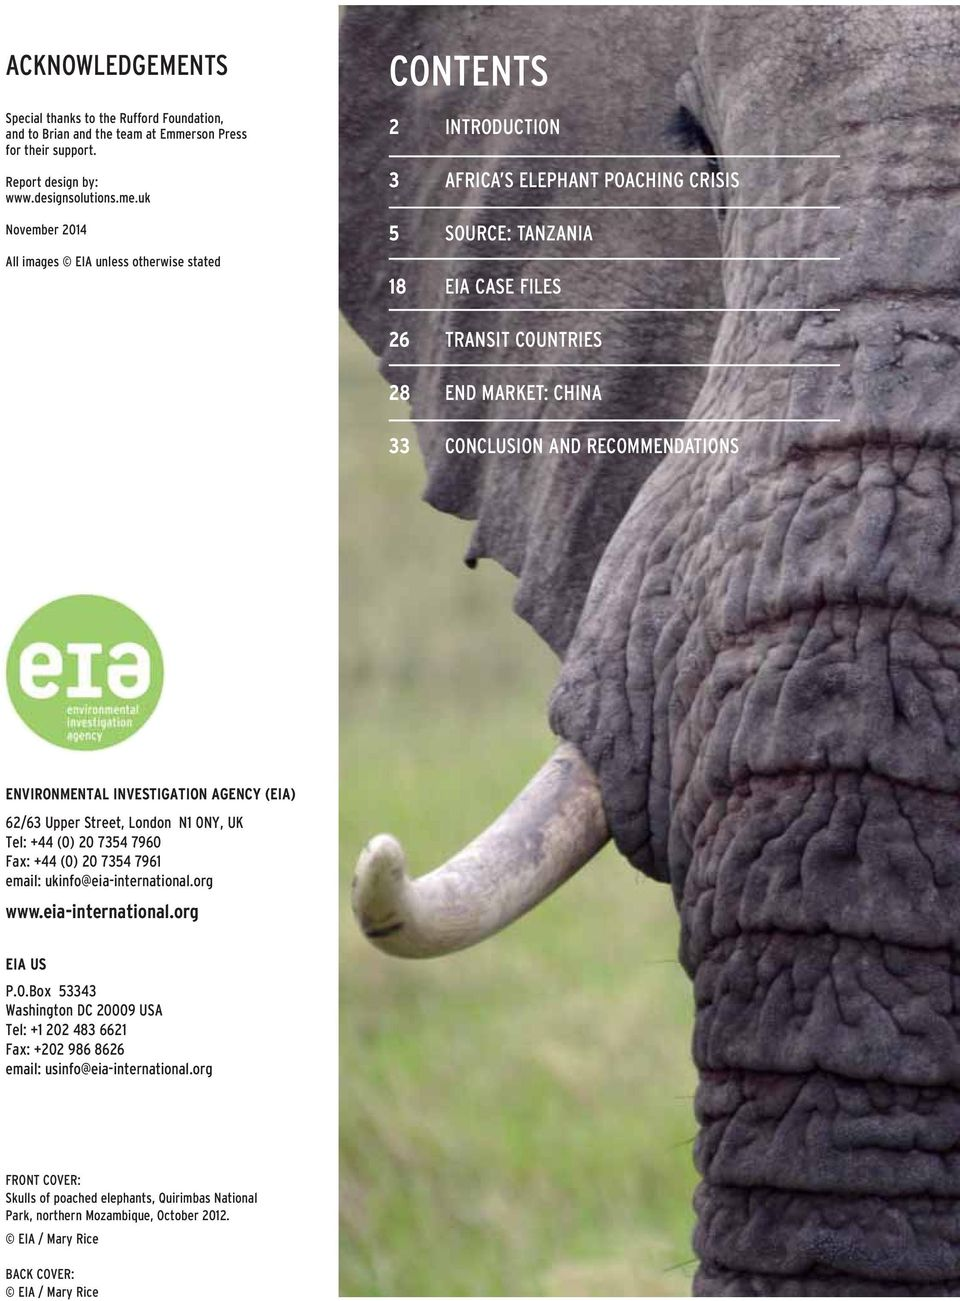 uk November 2014 All images EIA unless otherwise stated 2 3 5 18 26 28 33 INTRODUCTION AFRICA S ELEPHANT POACHING CRISIS SOURCE: TANZANIA EIA CASE FILES TRANSIT COUNTRIES END MARKET: CHINA CONCLUSION